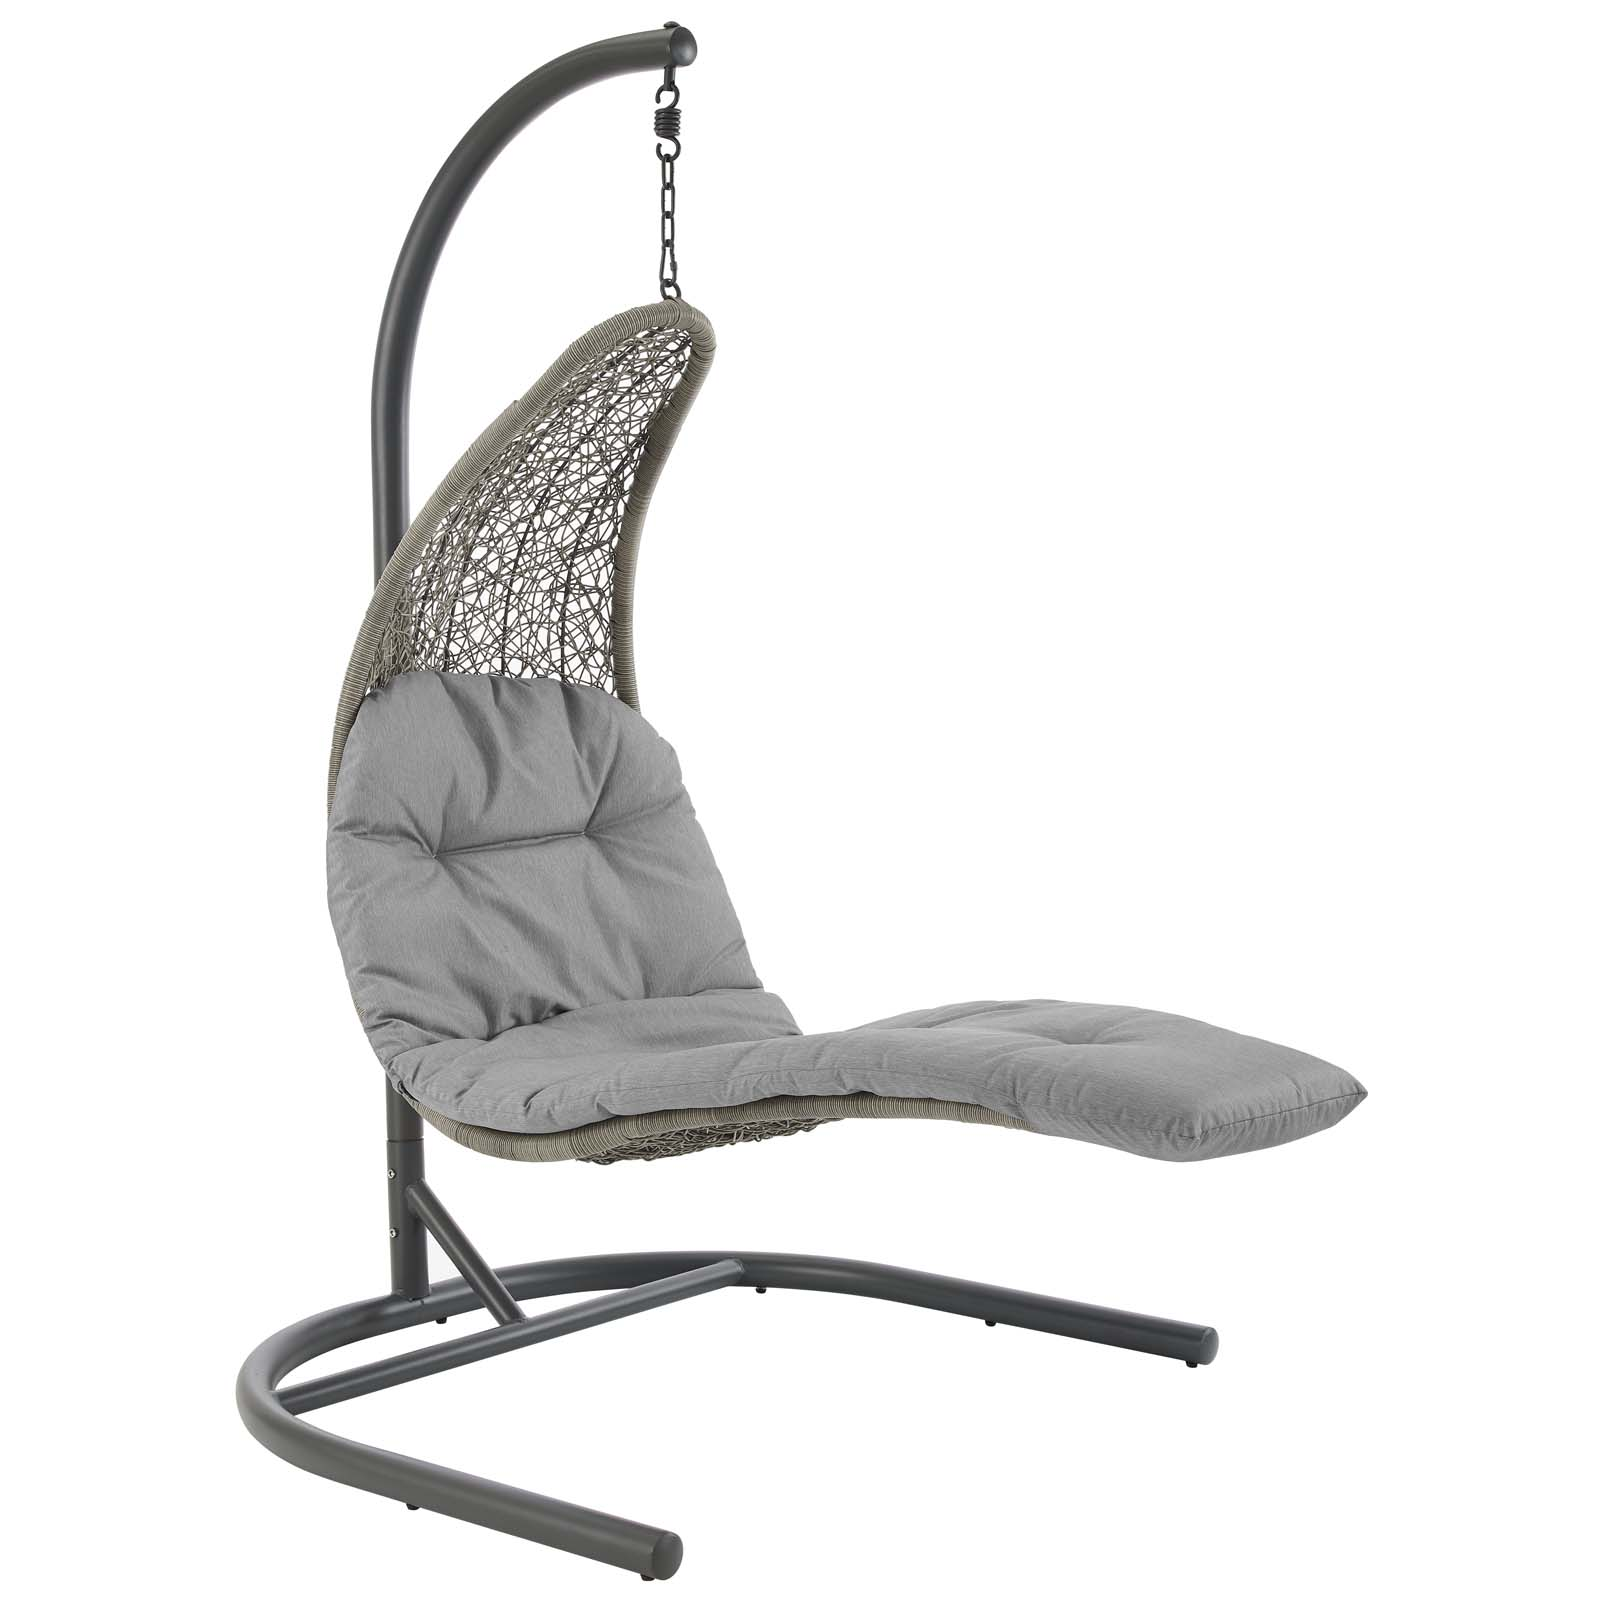 Escape To A Place Of Relaxation With The Landscape Outdoor Patio Hanging Chaise Lounge Swing Chair Wred Textured Synthetic Rattan Light Gray And